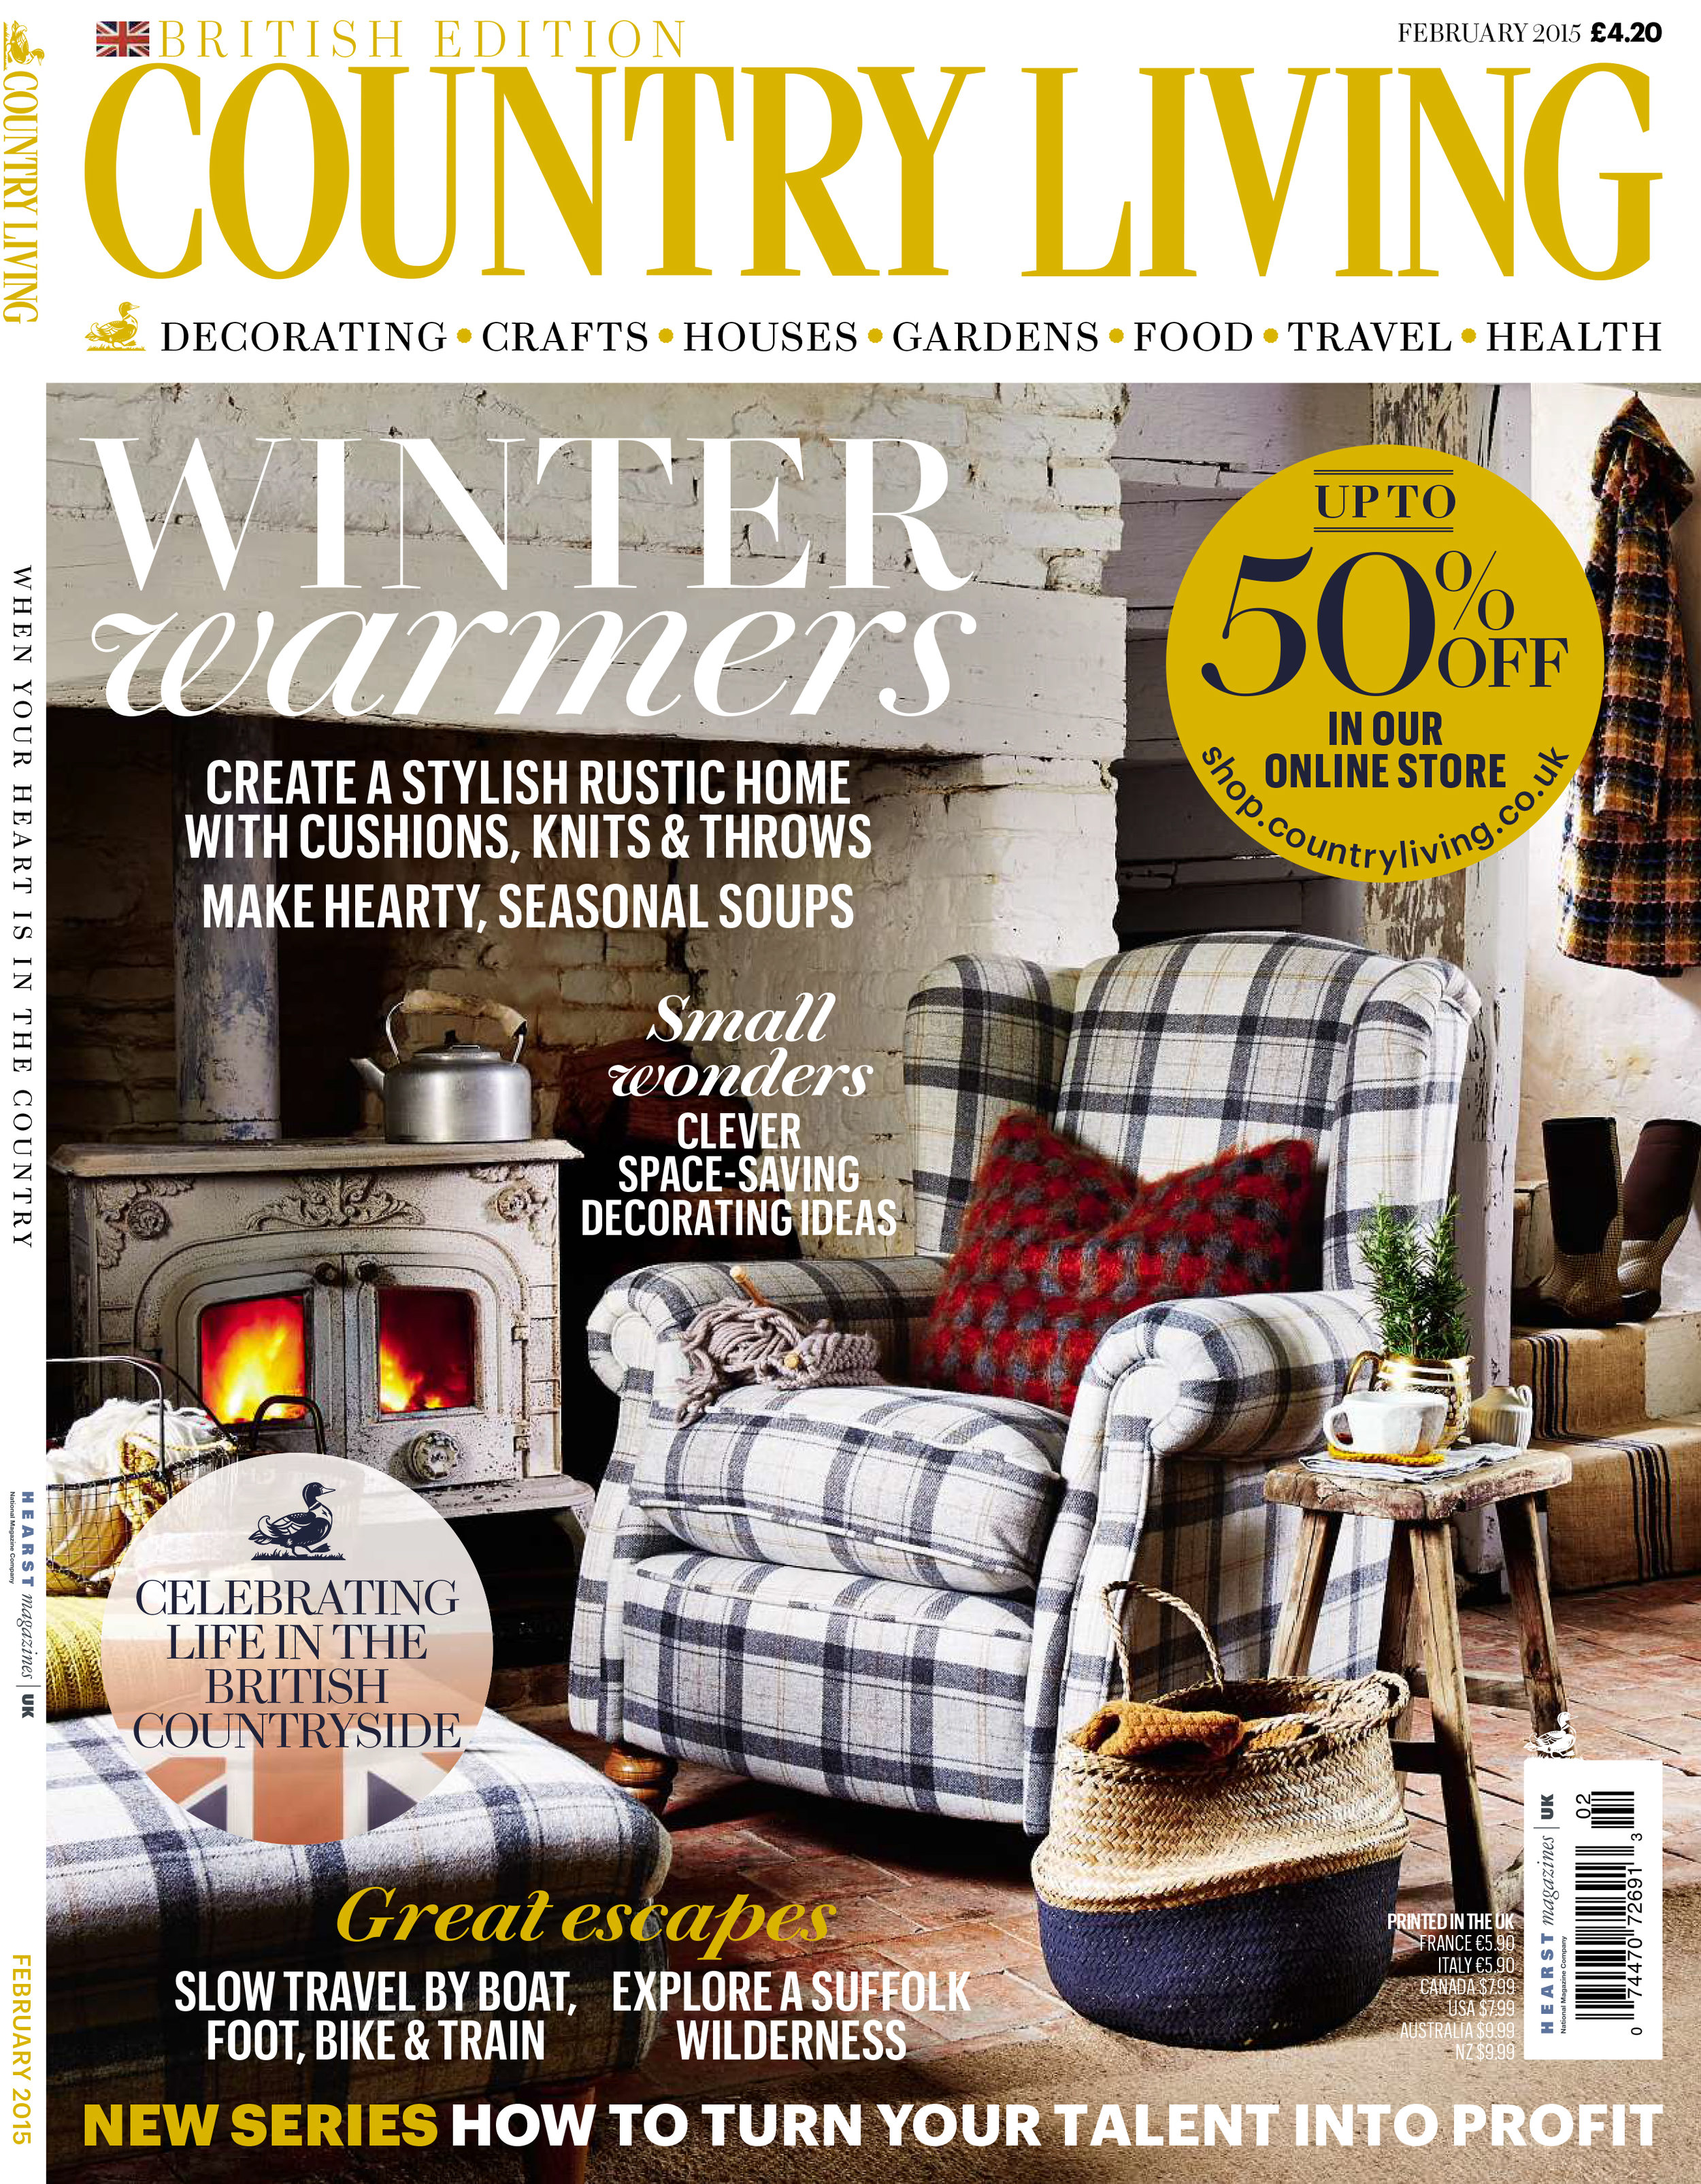 Country Living Magazine 2015.jpg